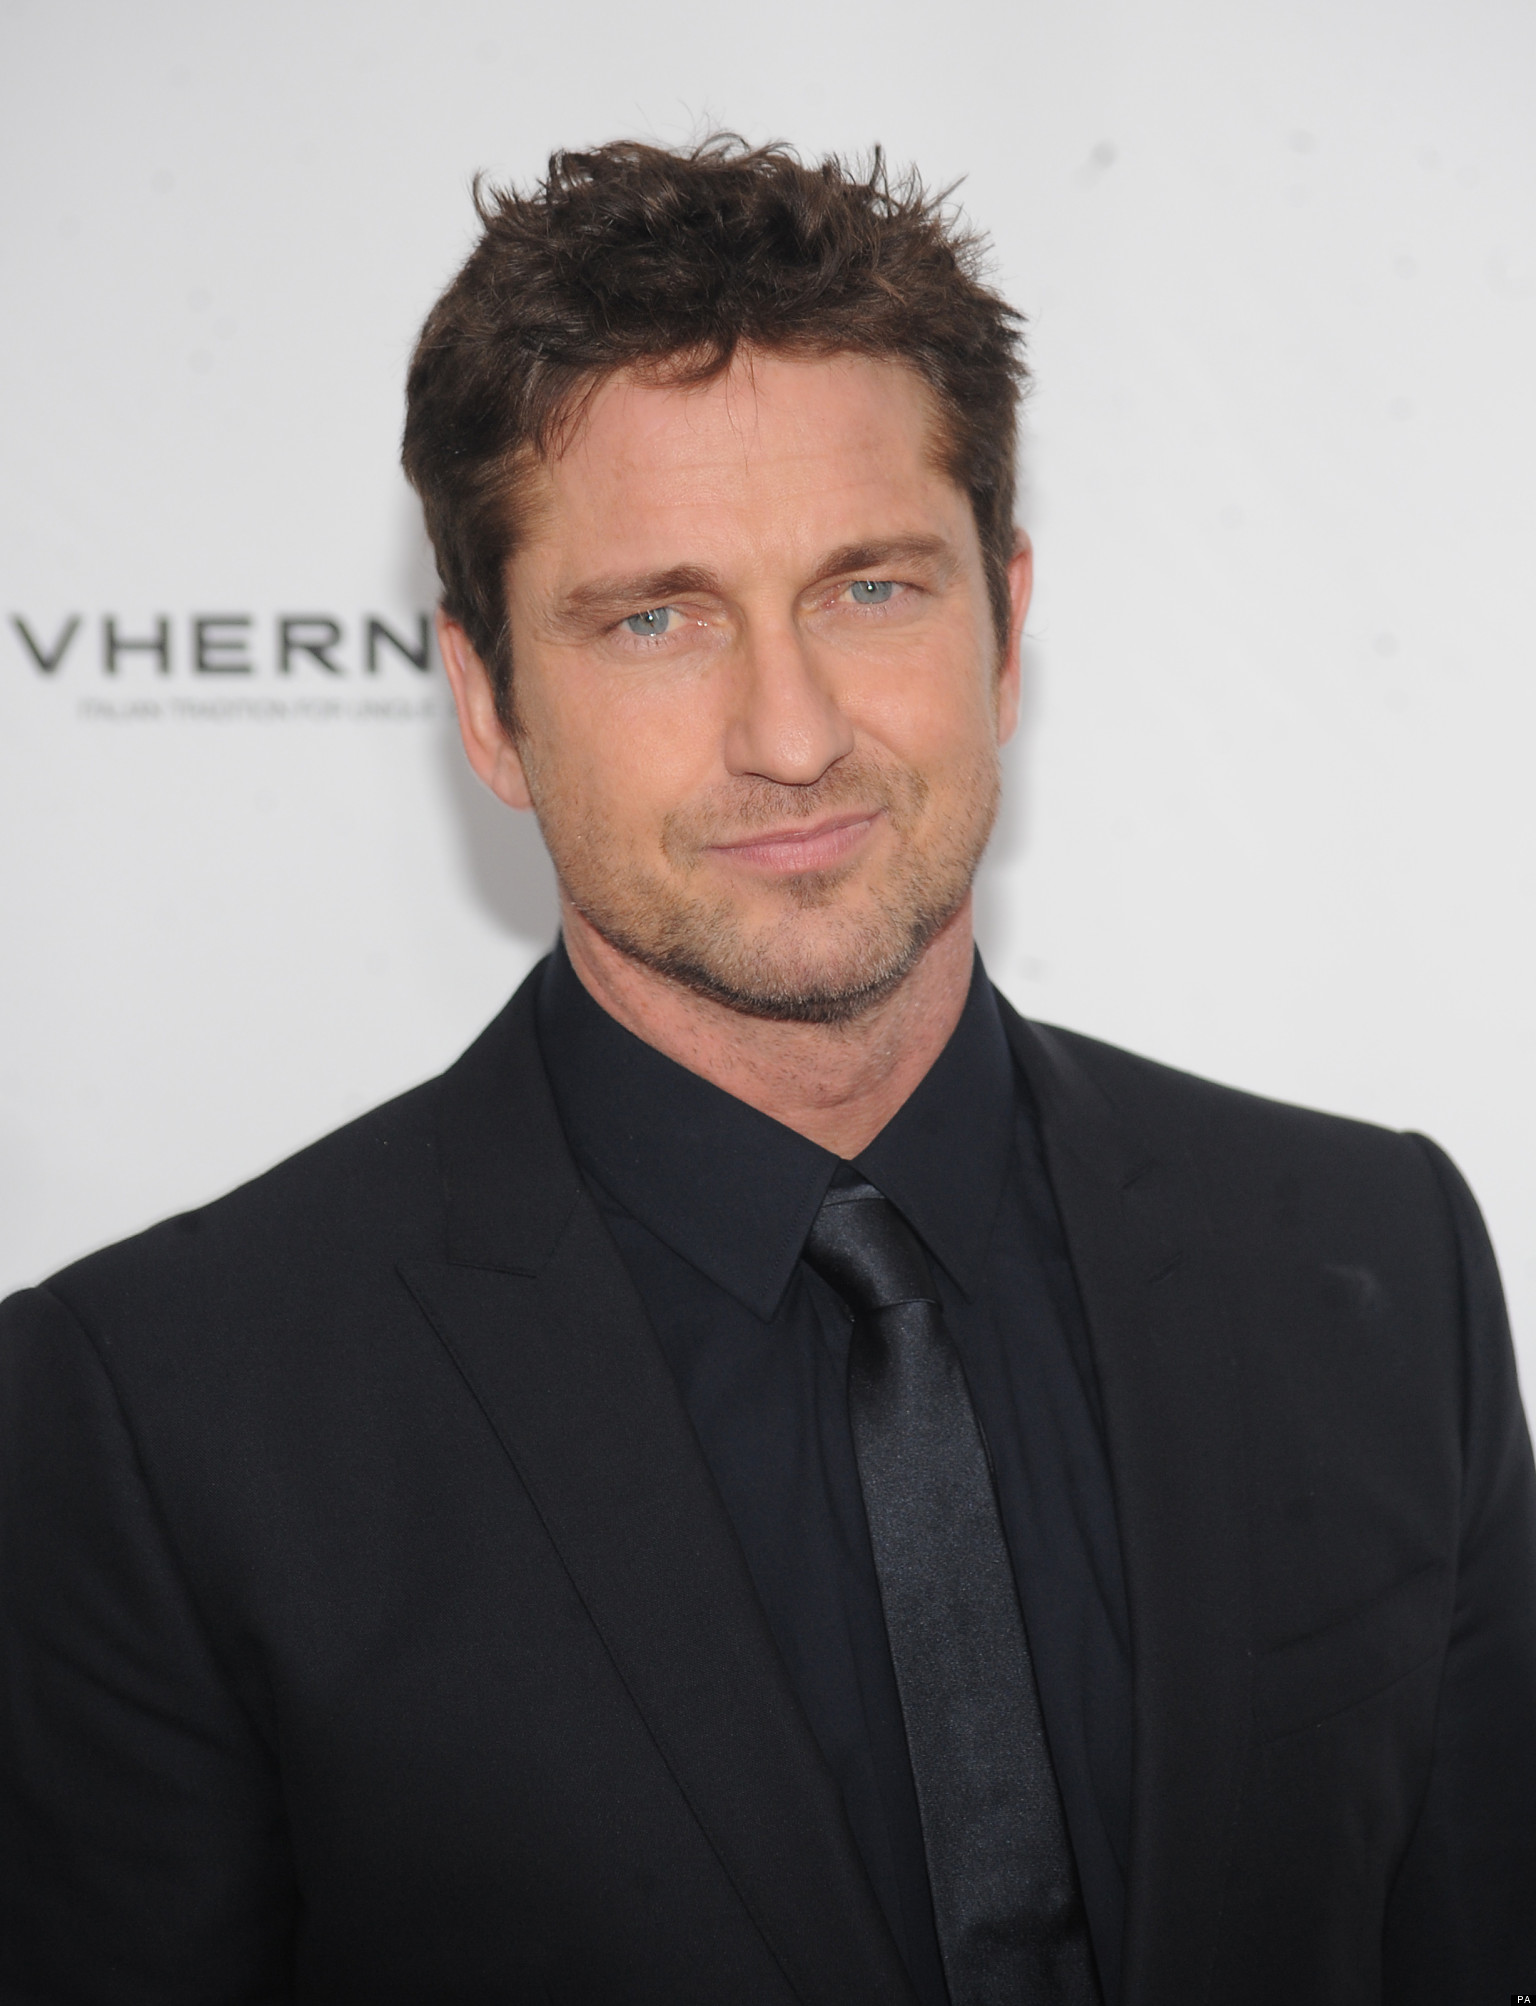 Gerard Butler Tells HuffPostUK About The Surfing Accident That Nearly ... Gerard Butler